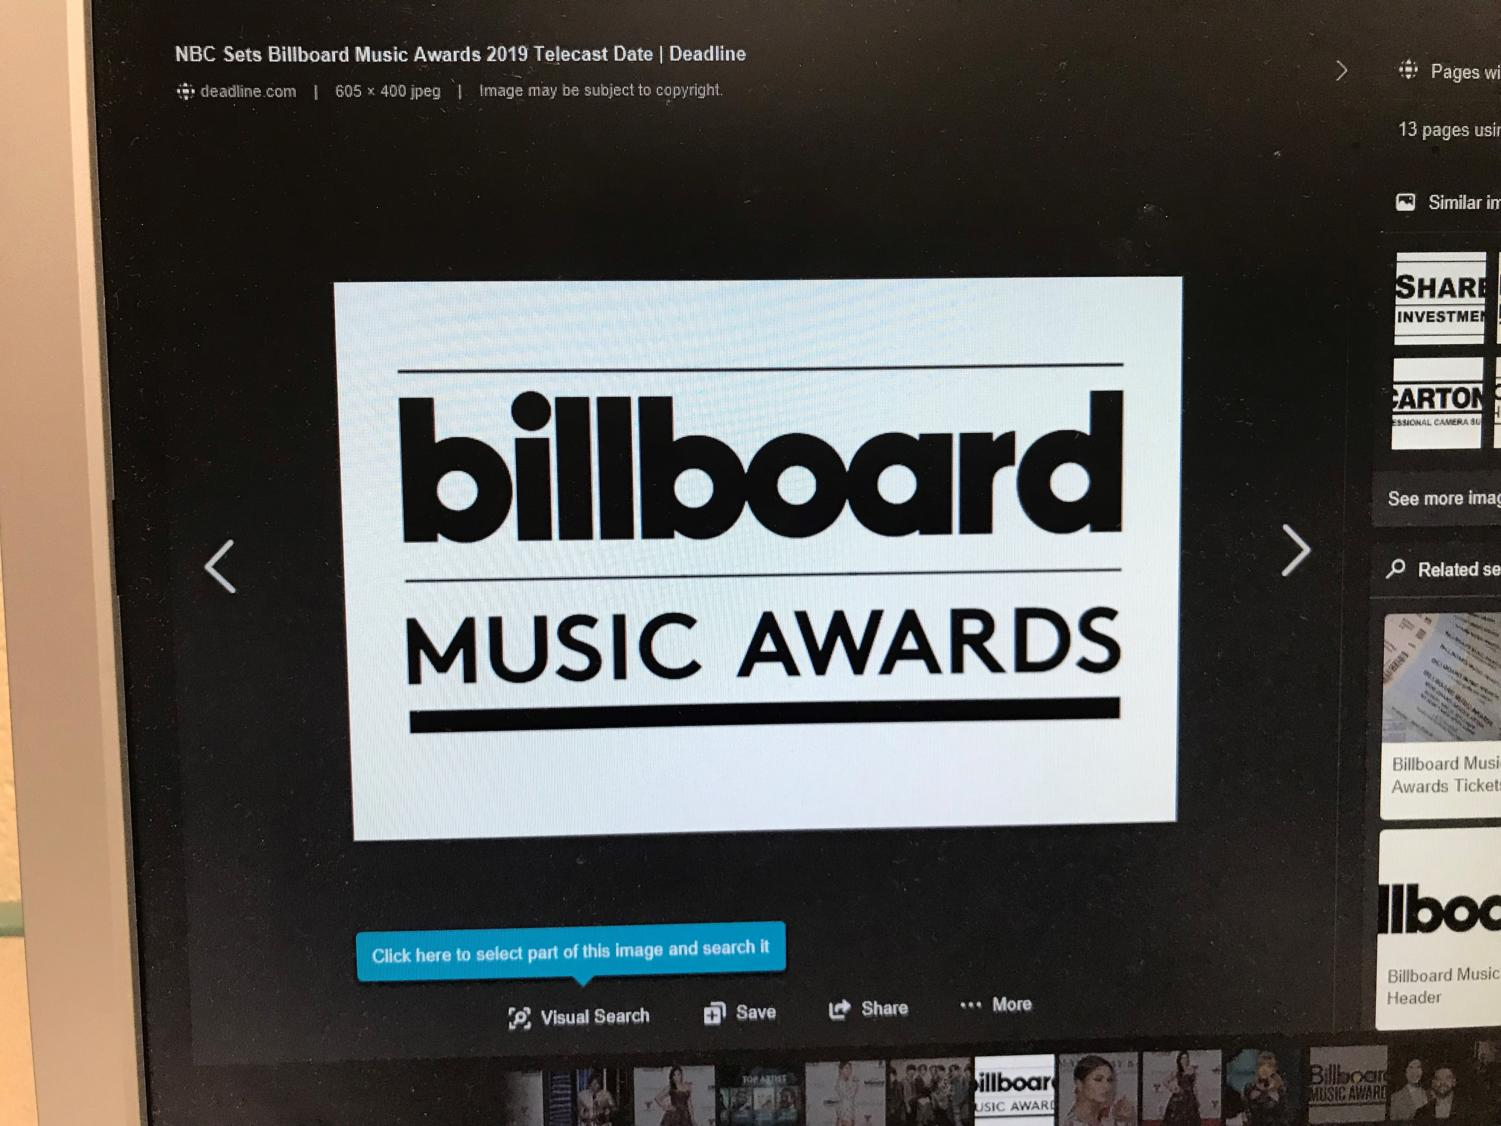 The Billboard Awards are a prestigious music event that happens at the beginning of May.